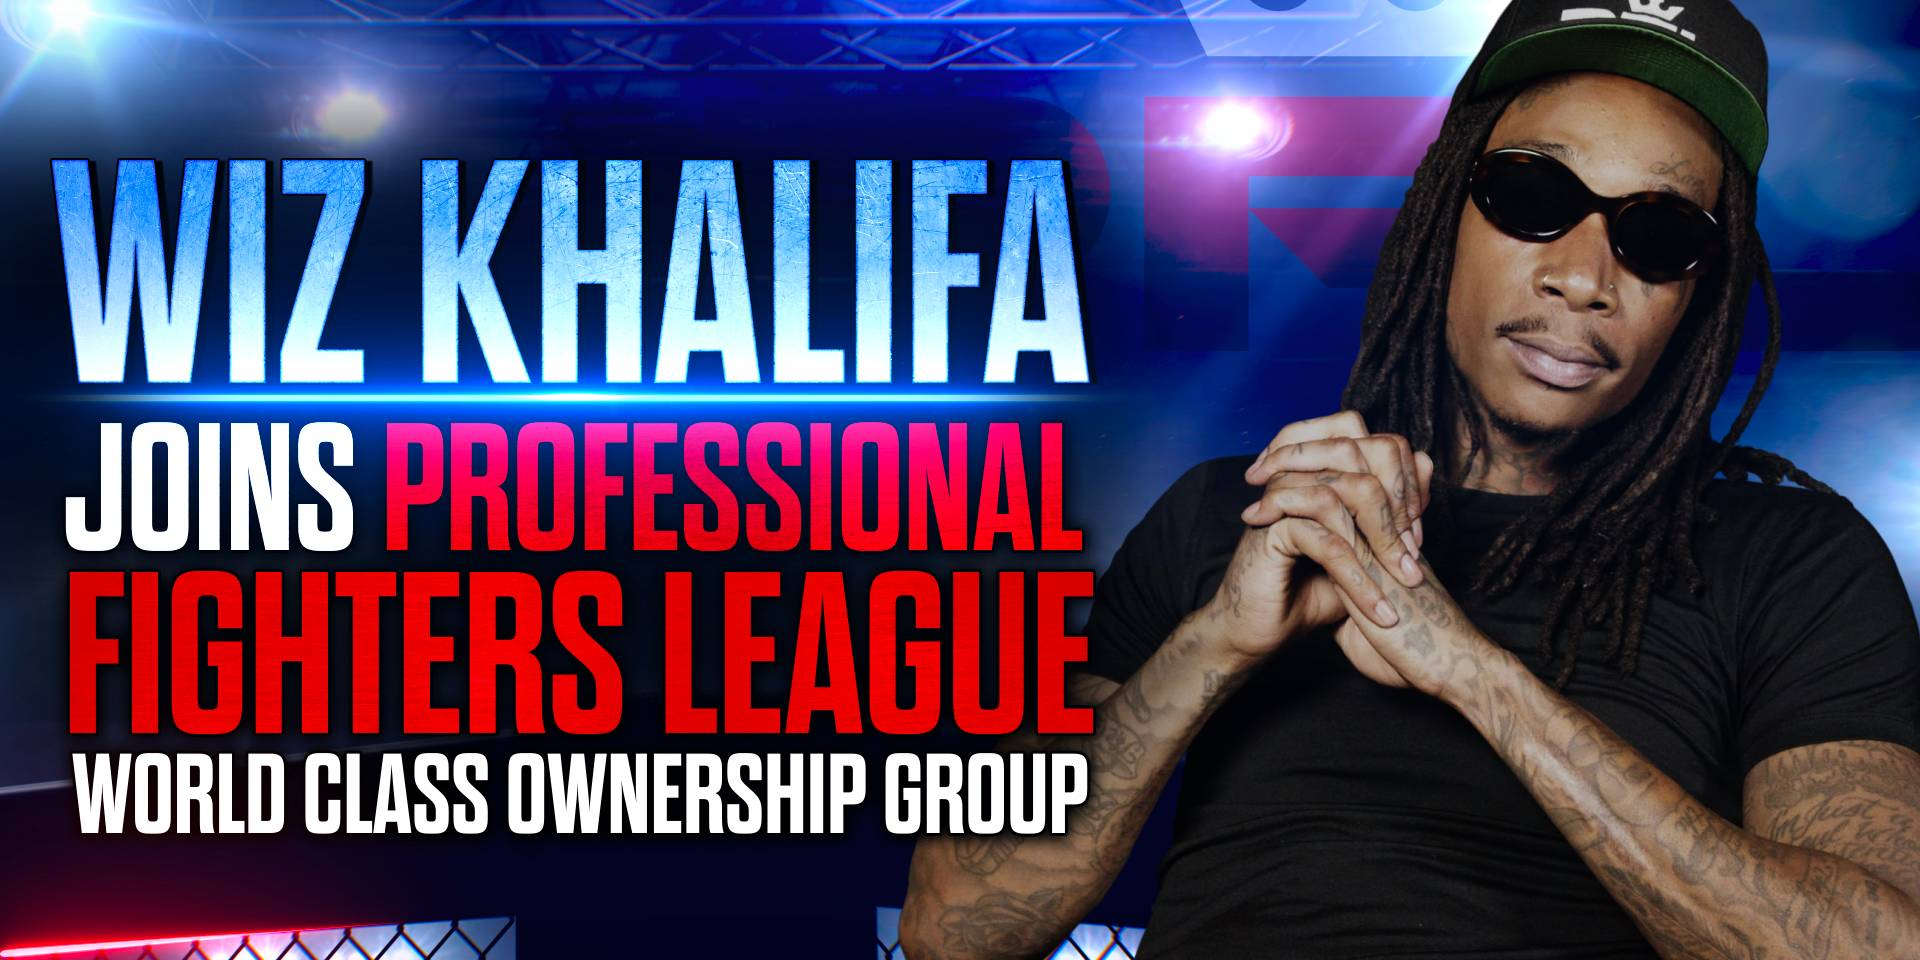 WIZ KHALIFA JOINS PROFESSIONAL FIGHTERS LEAGUE WORLD CLASS OWNERSHIP GROUP